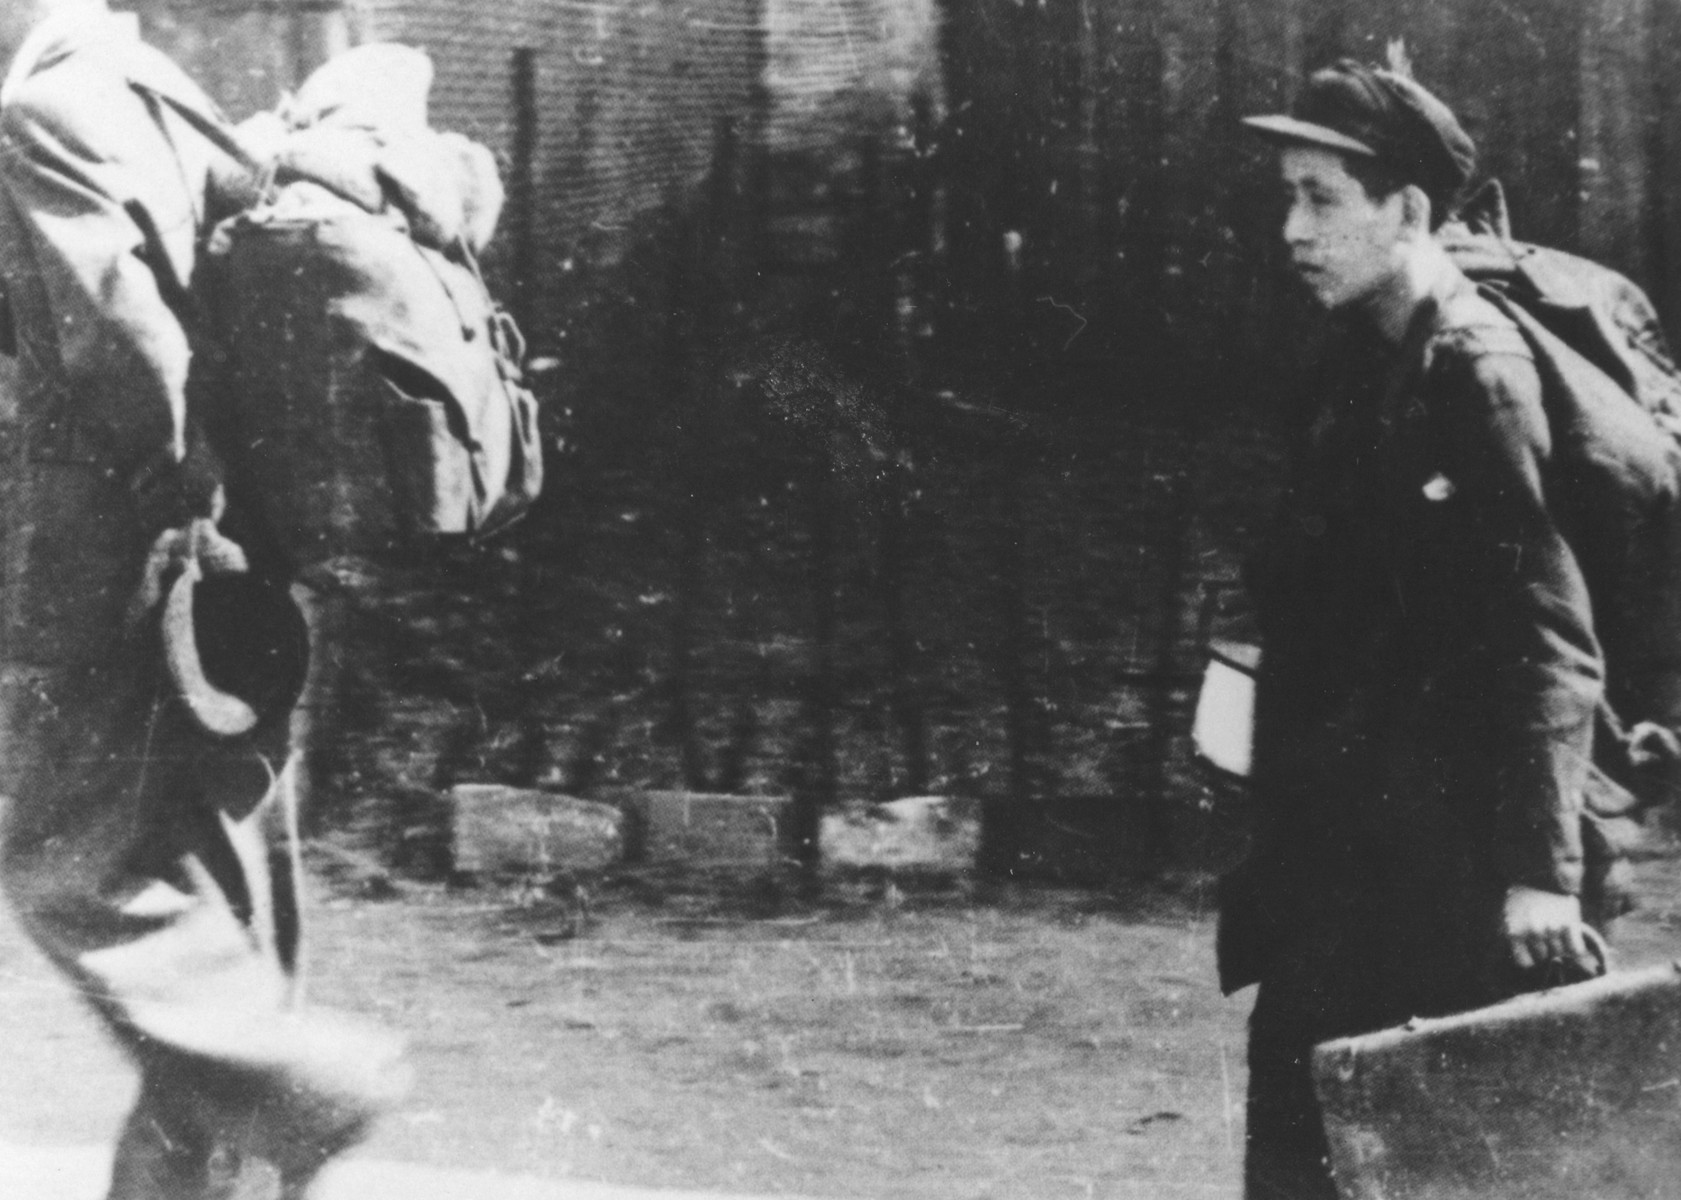 On the way to the deportation train in the Lodz ghetto.